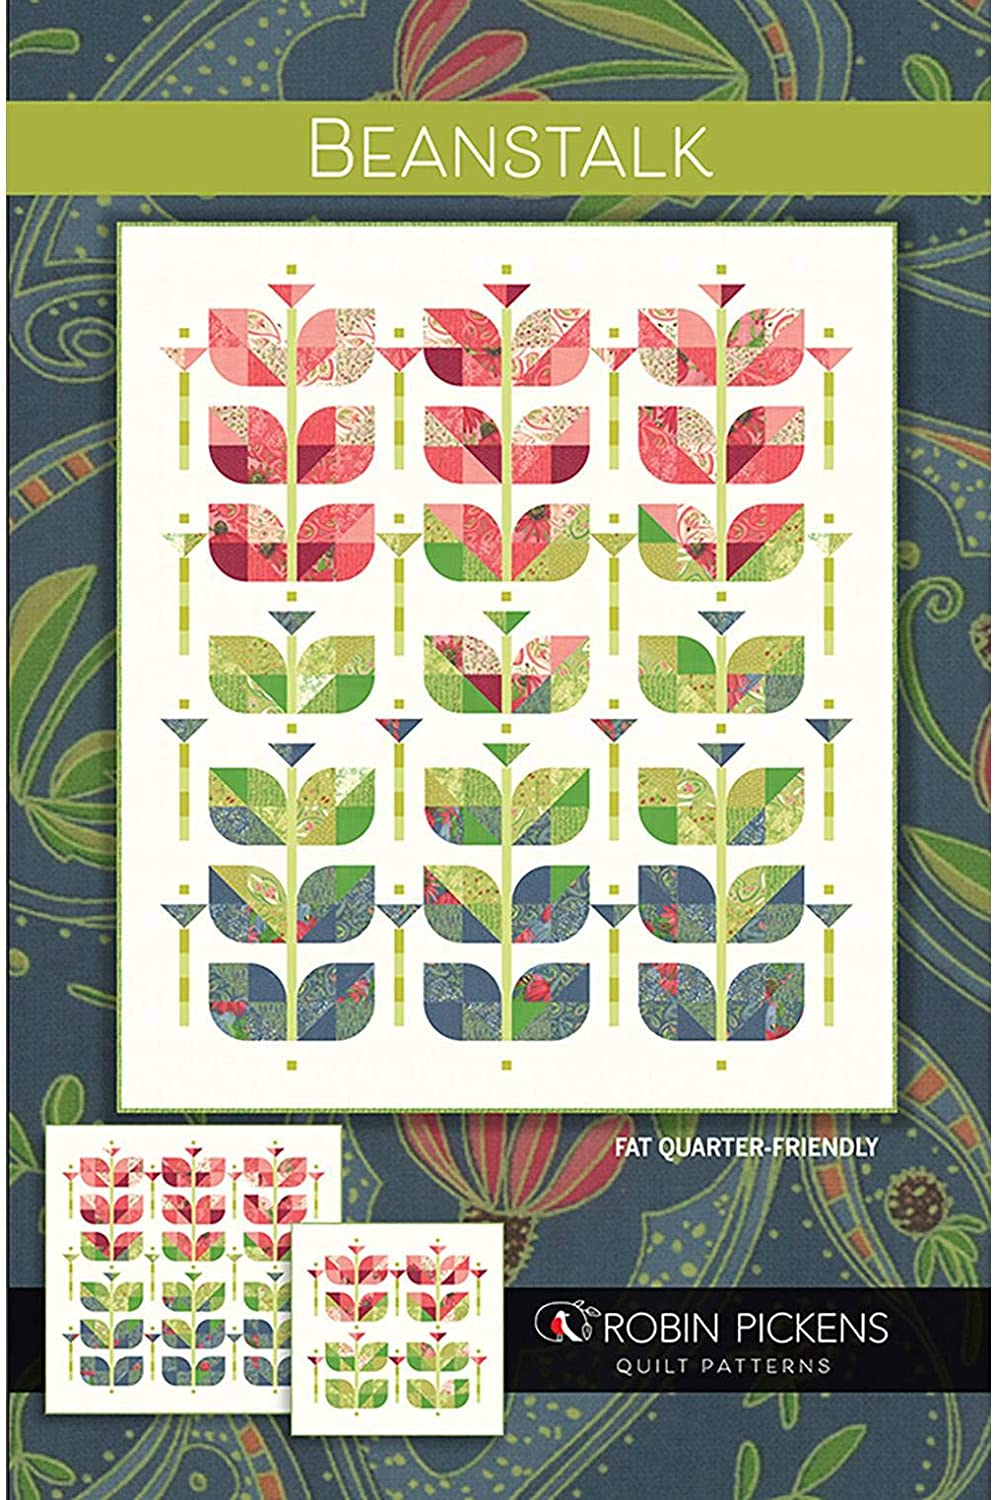 Beanstalk Quilt Pattern by Robin Pickens RPQPB125